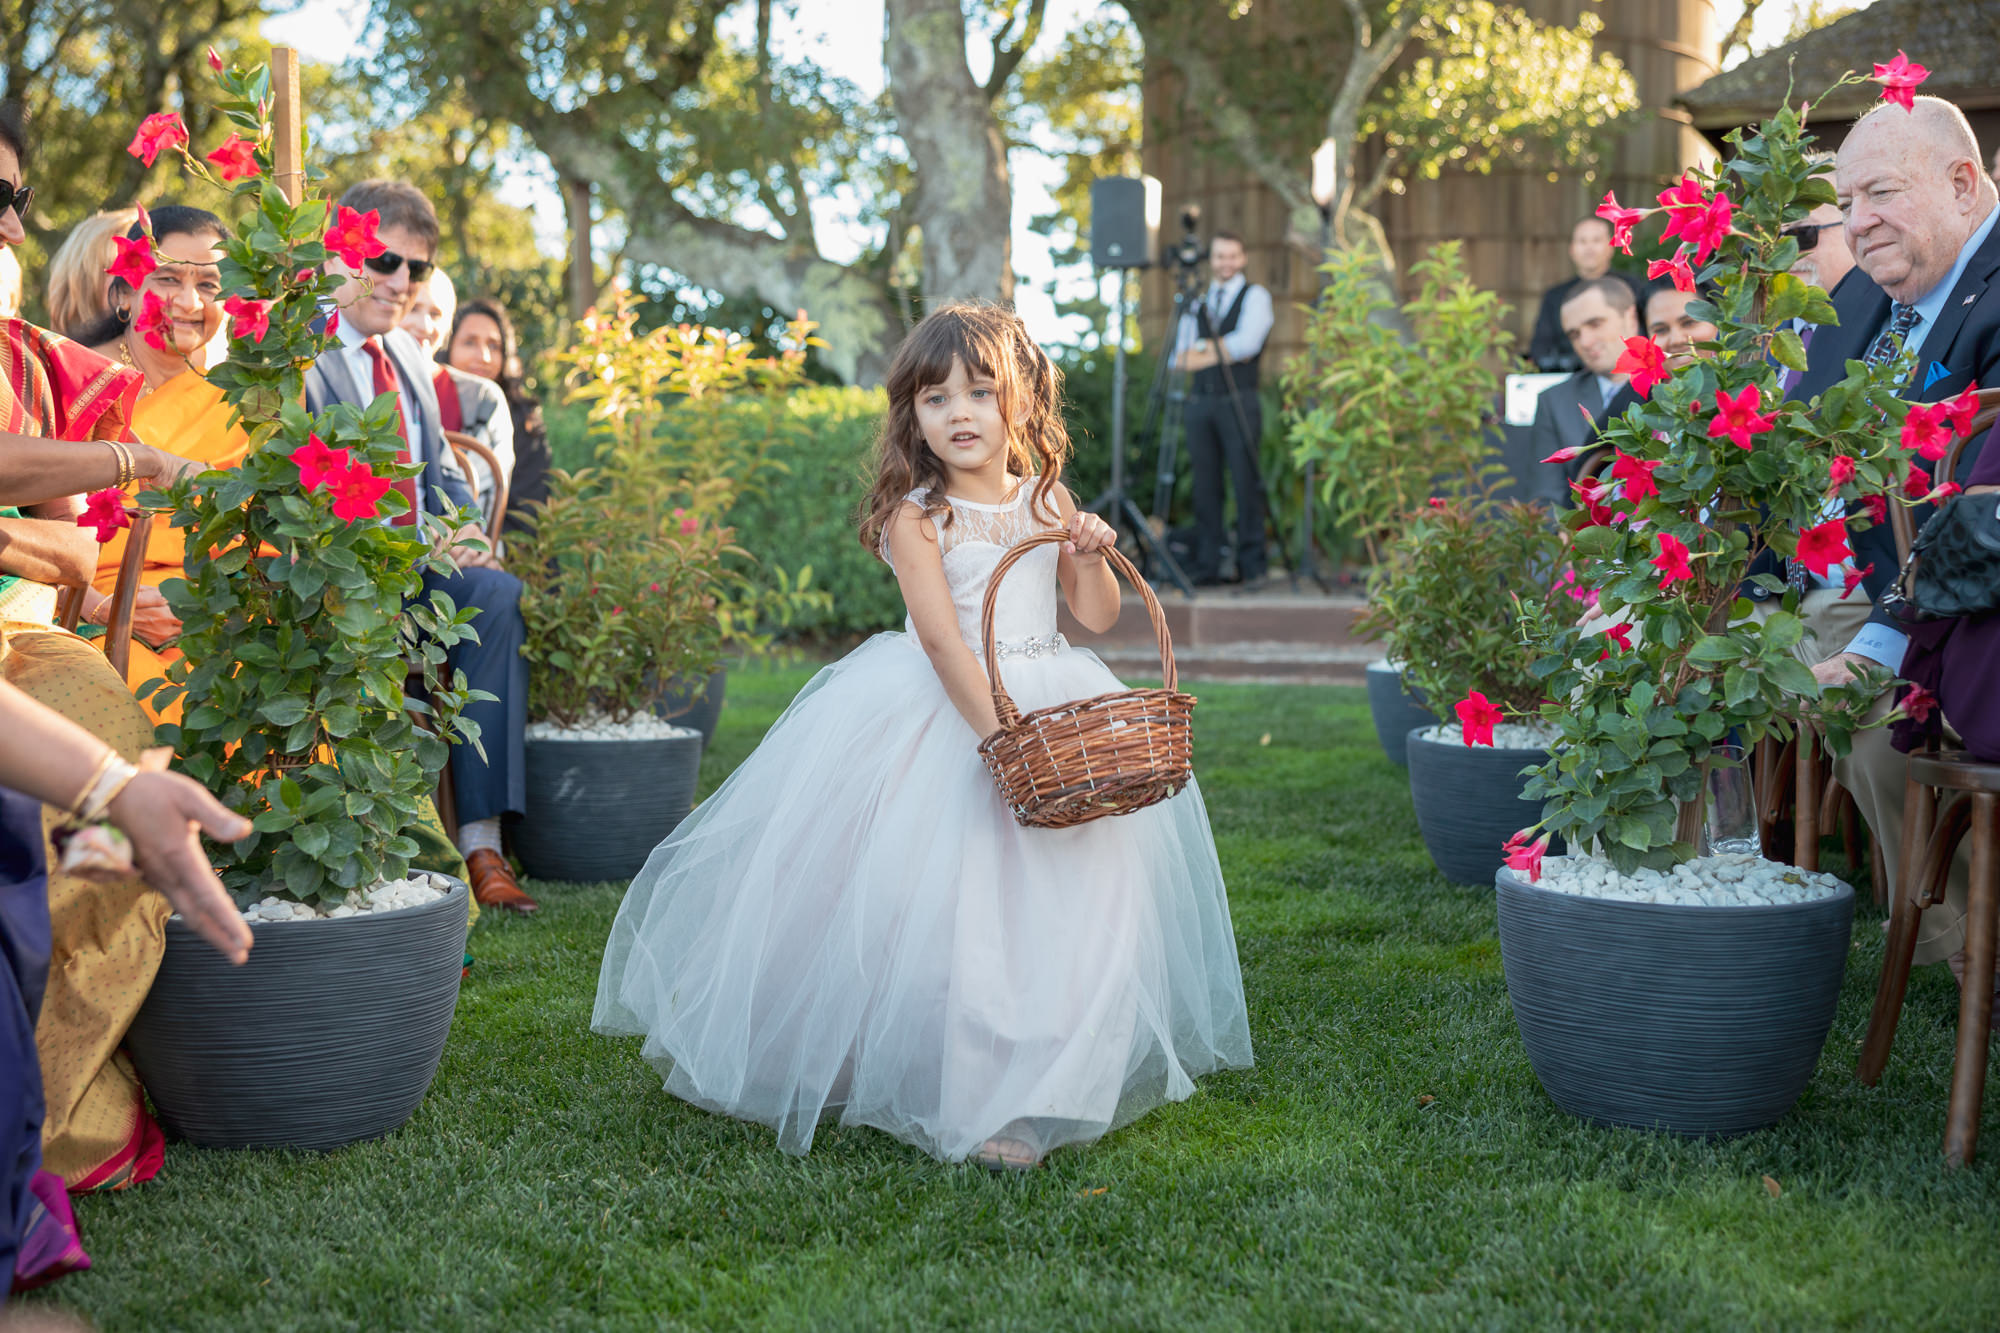 Sweet flower girl makes her way down the aisle - photo by Roberto Valenzuela